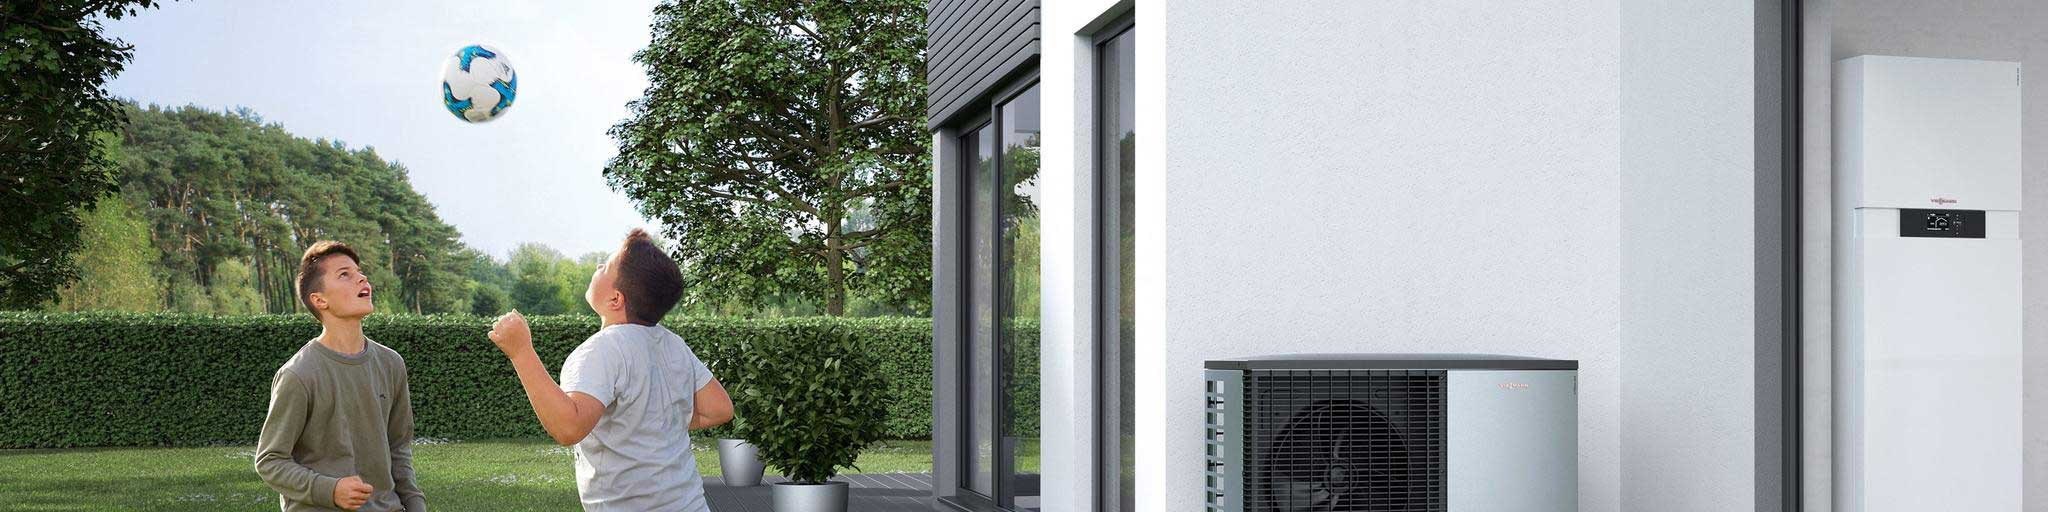 Heat-Pump-Installers-Ireland-Recommends-Why-Heat-Pumps-Are-Growing-in-Popularity-